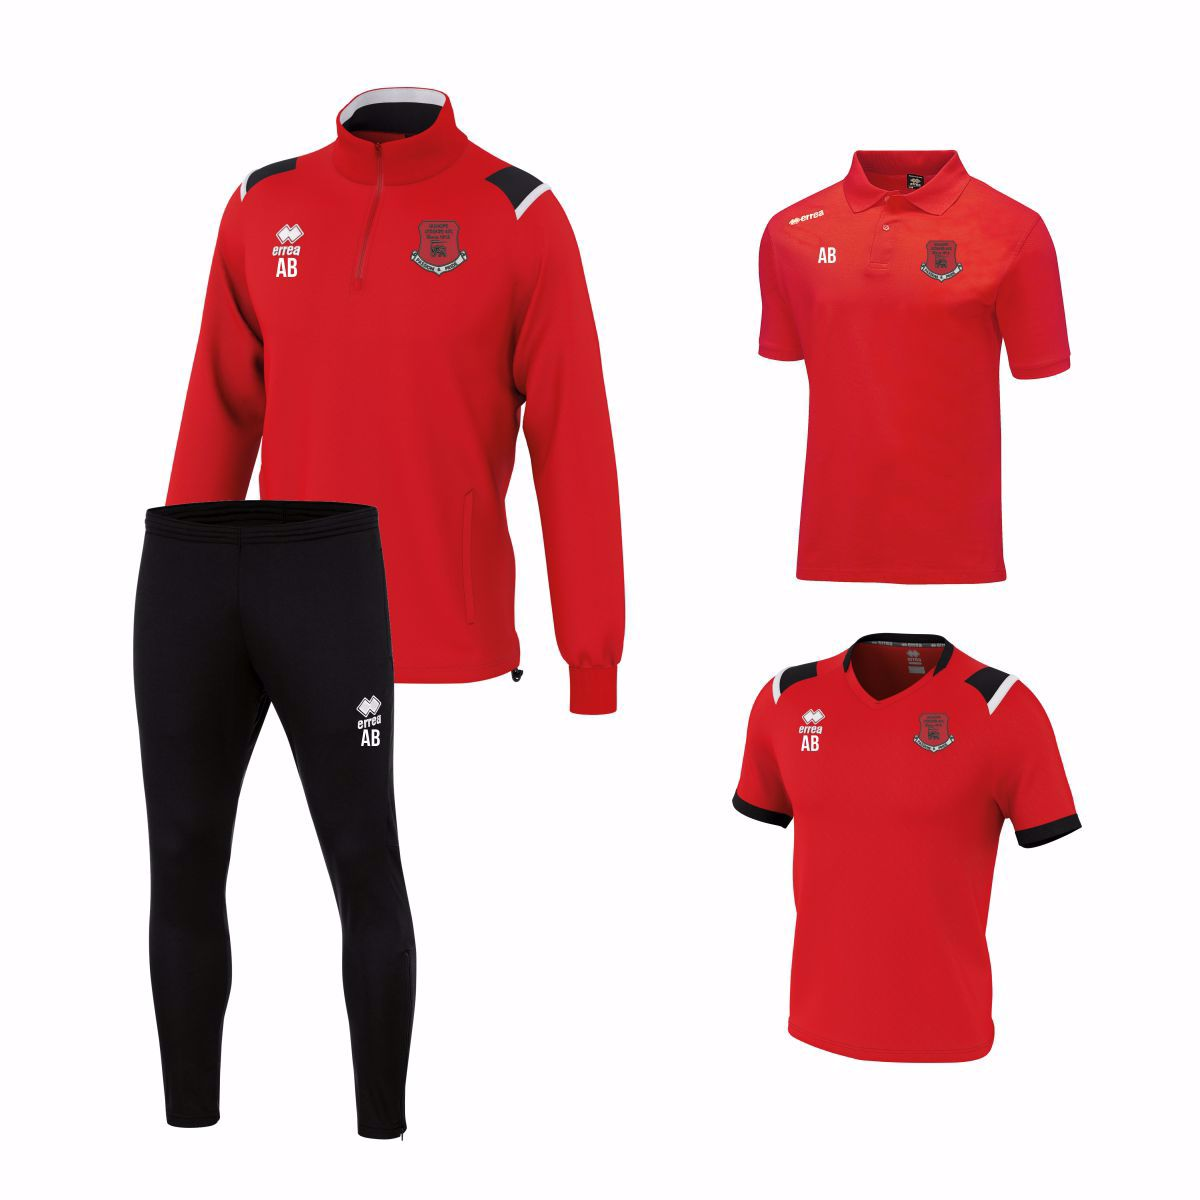 BISHOPS LYDEARDS FC PLAYERS PACK - Juniors